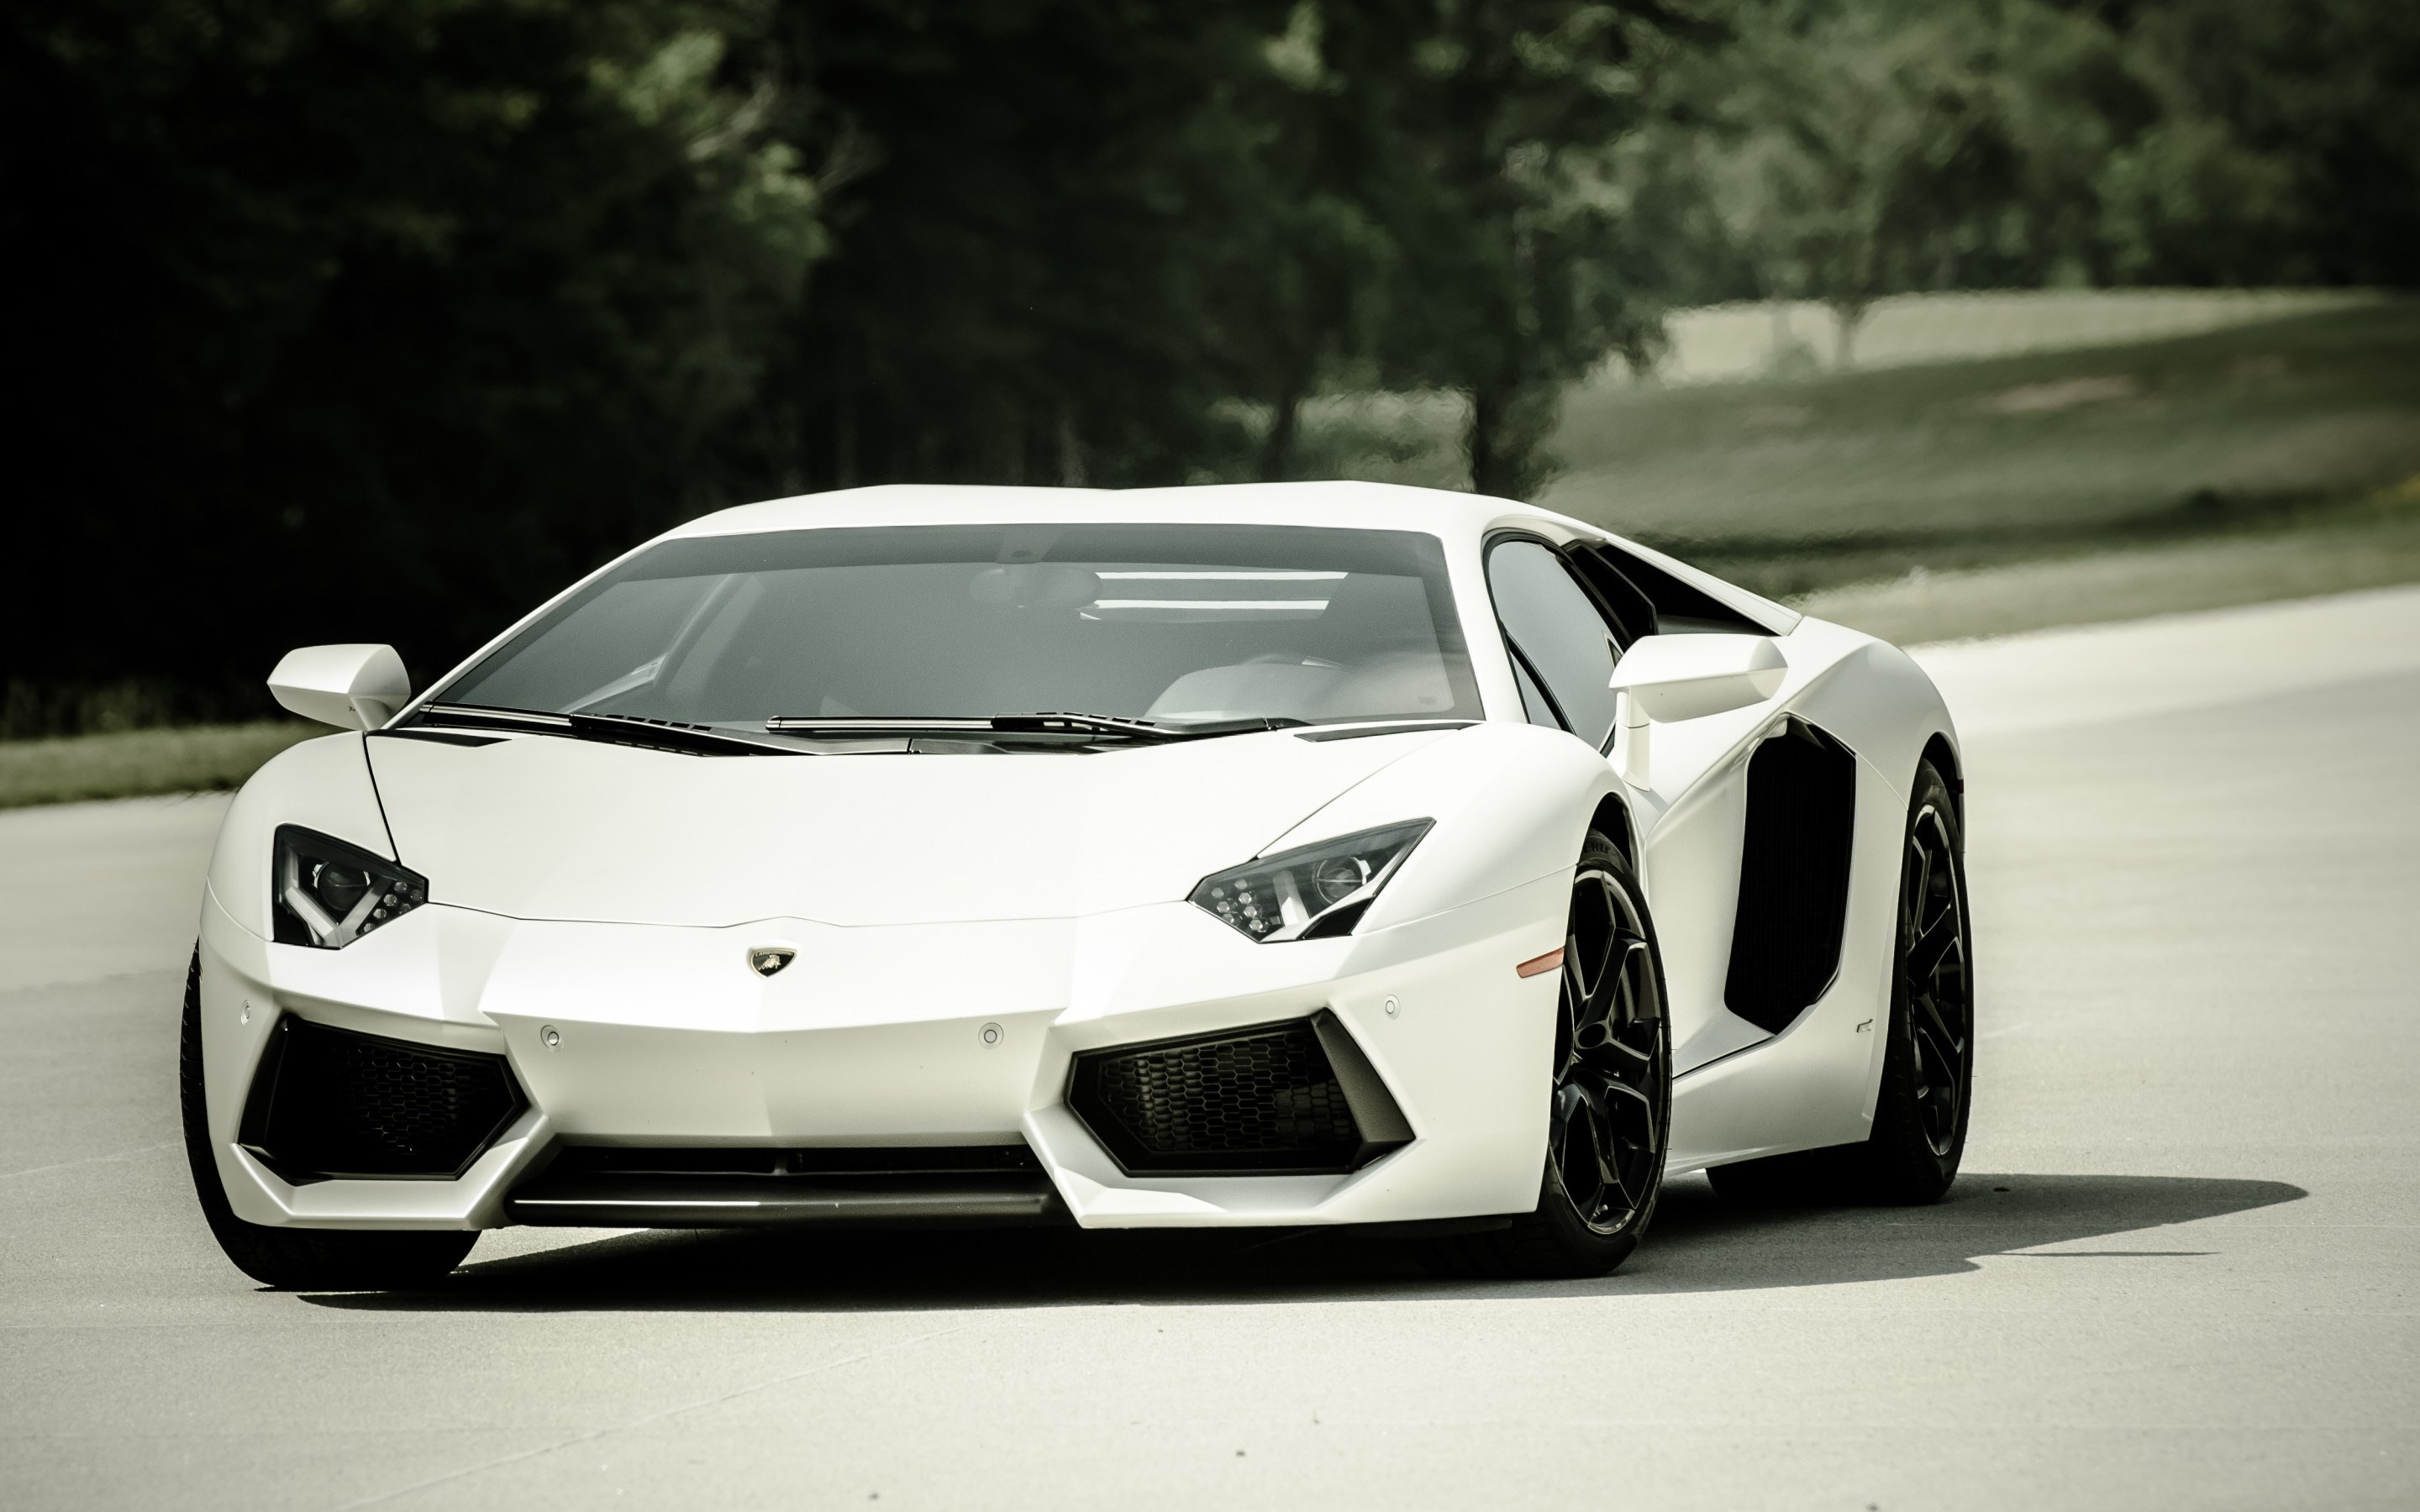 Cool Lamborghini Aventador HD Wallpaper   HD Wallpaper 2880x1800